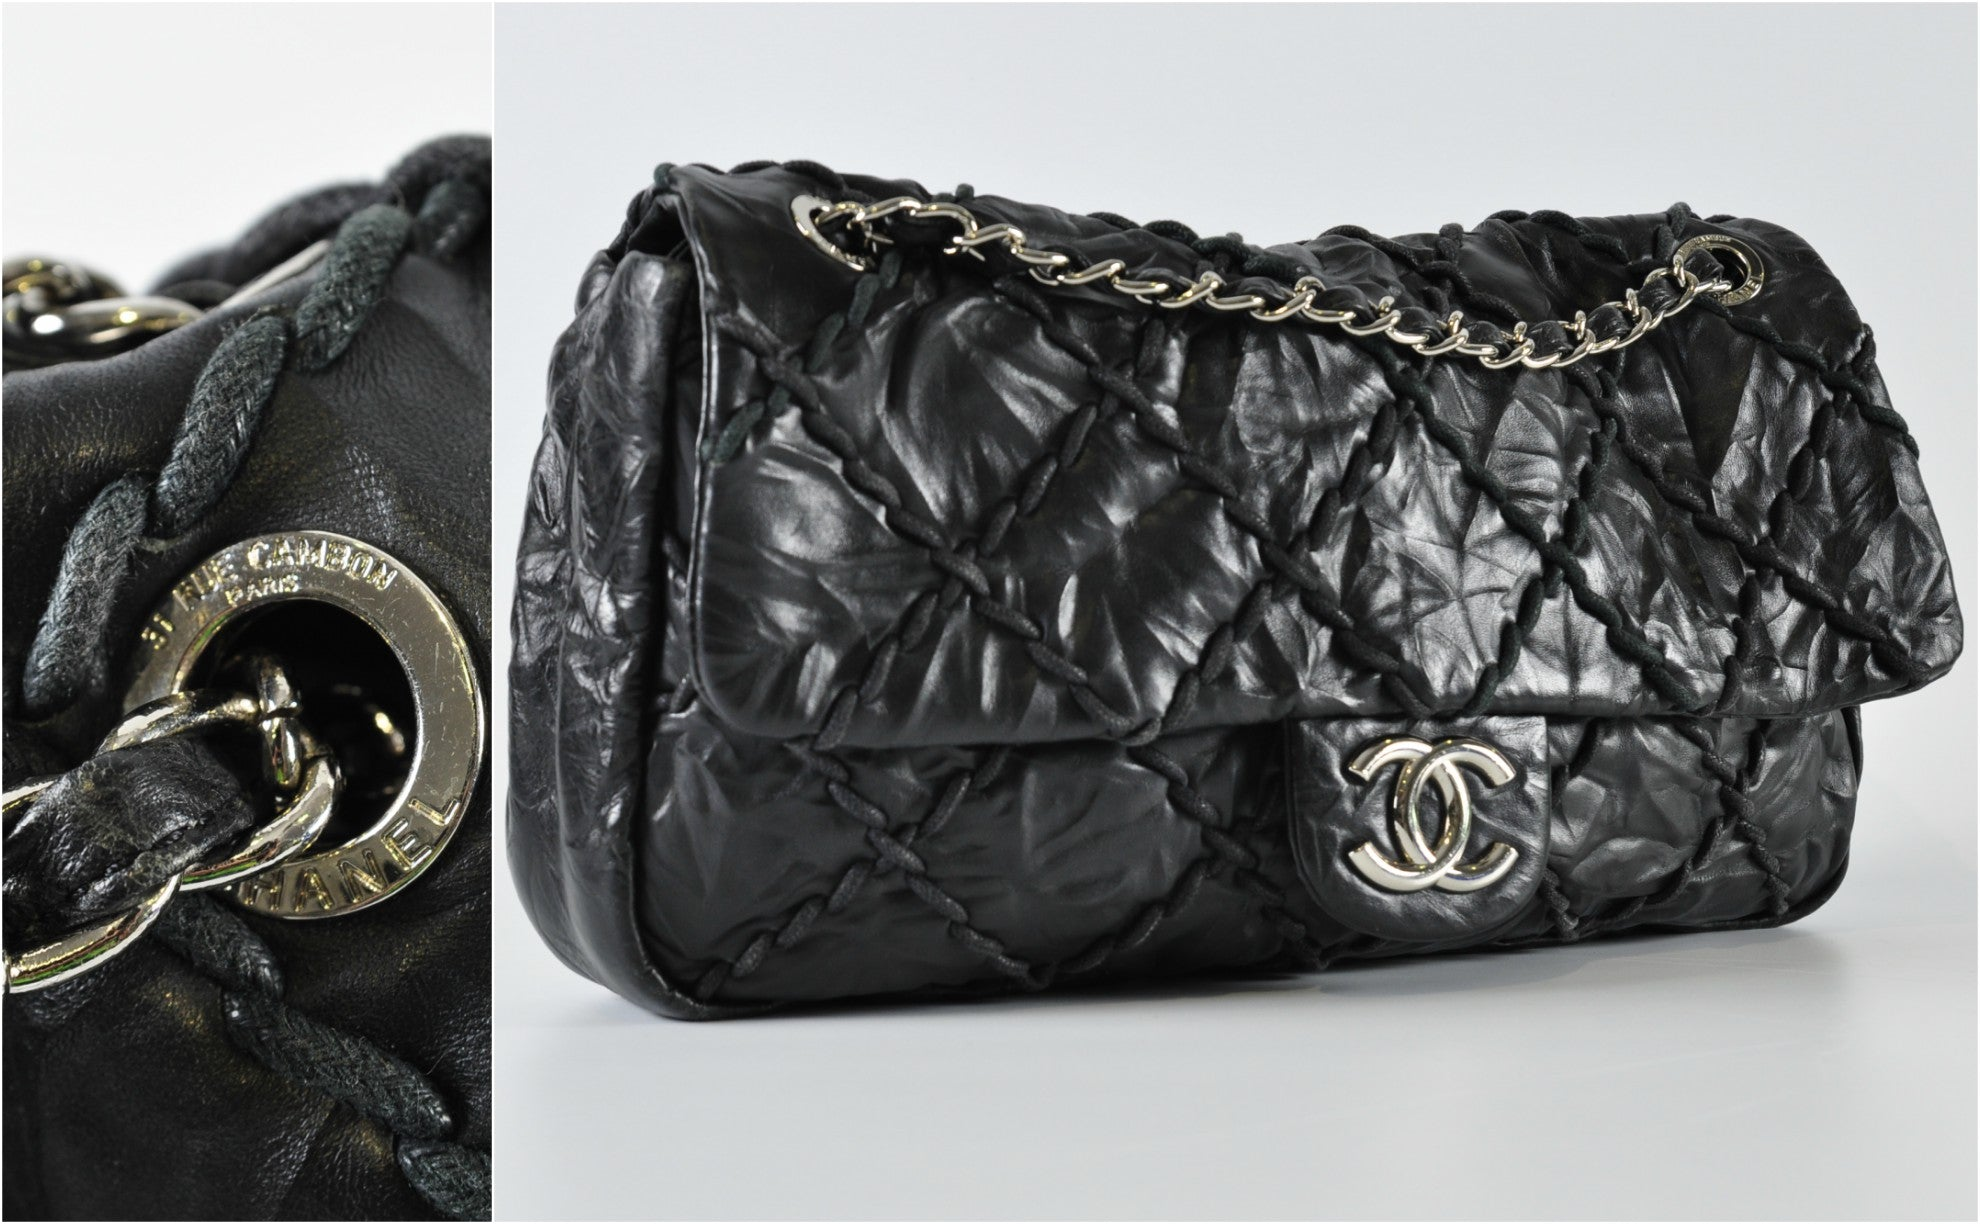 Chanel Black Quilted Calfskin Leather Ultra Stitch Jumbo Flap Bag - Glampot